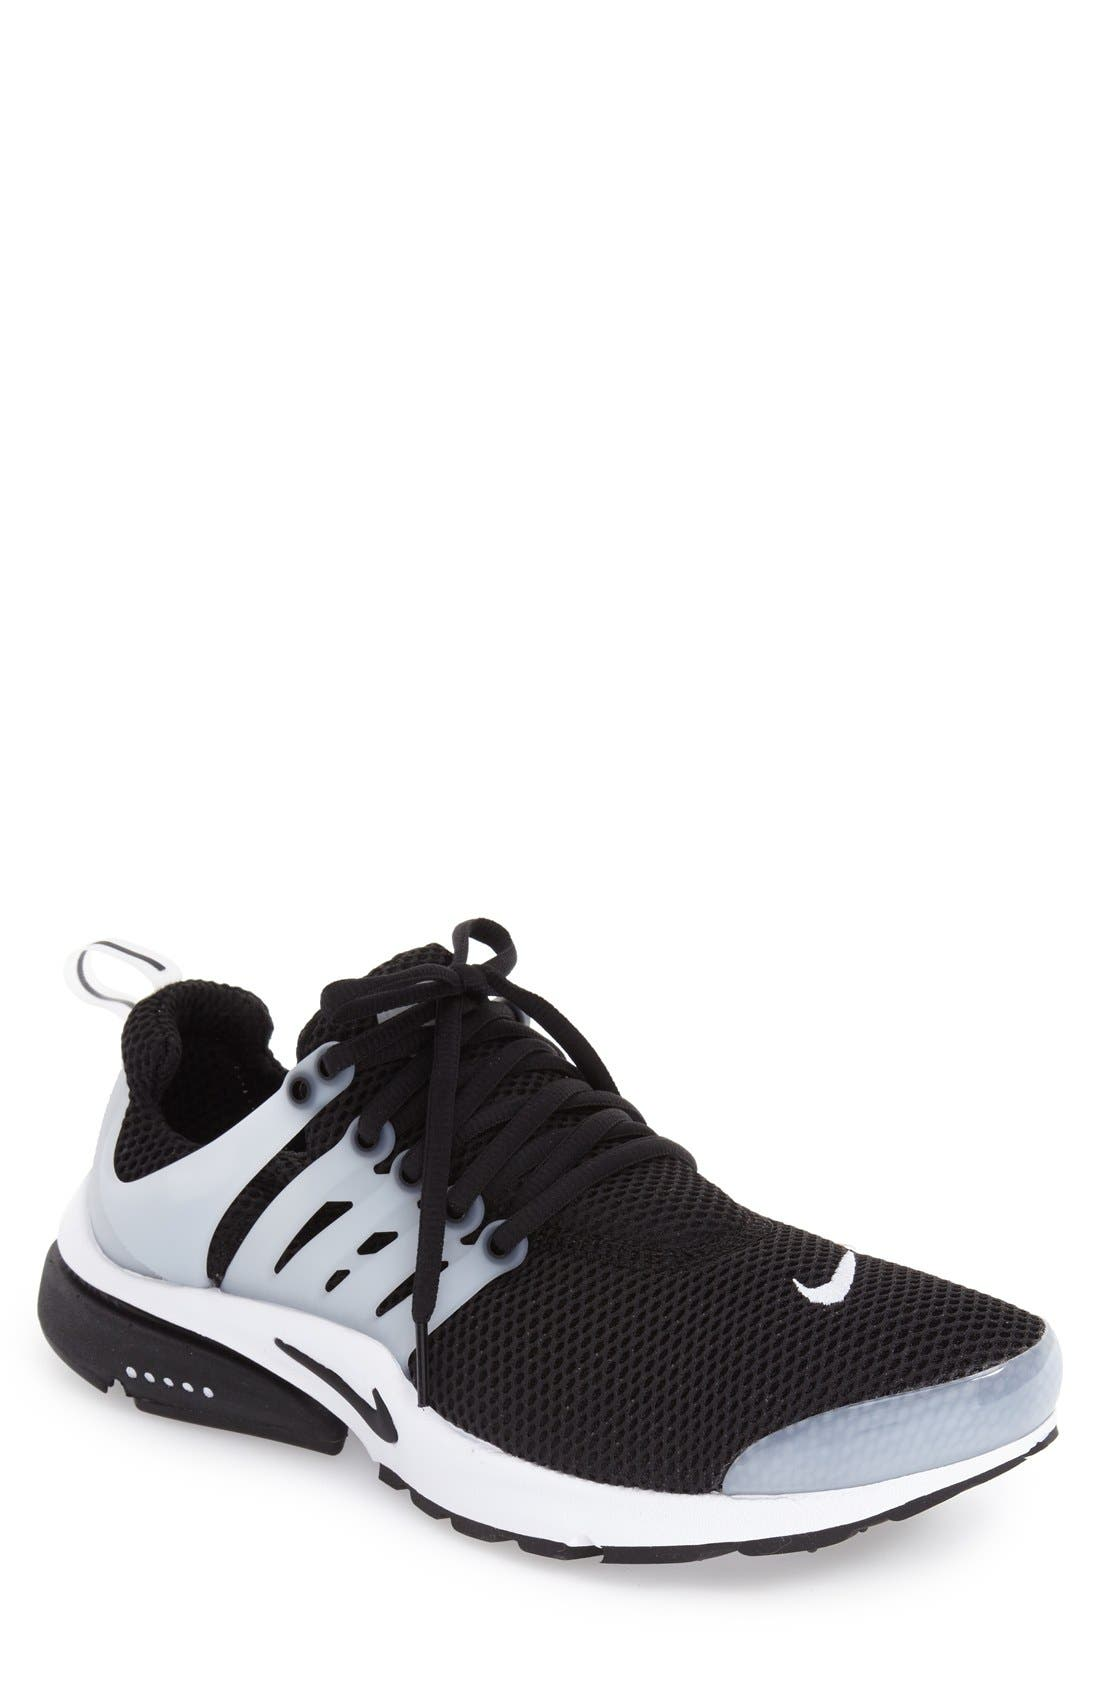 Alternate Image 1 Selected - Nike 'Air Presto' Sneaker (Men)